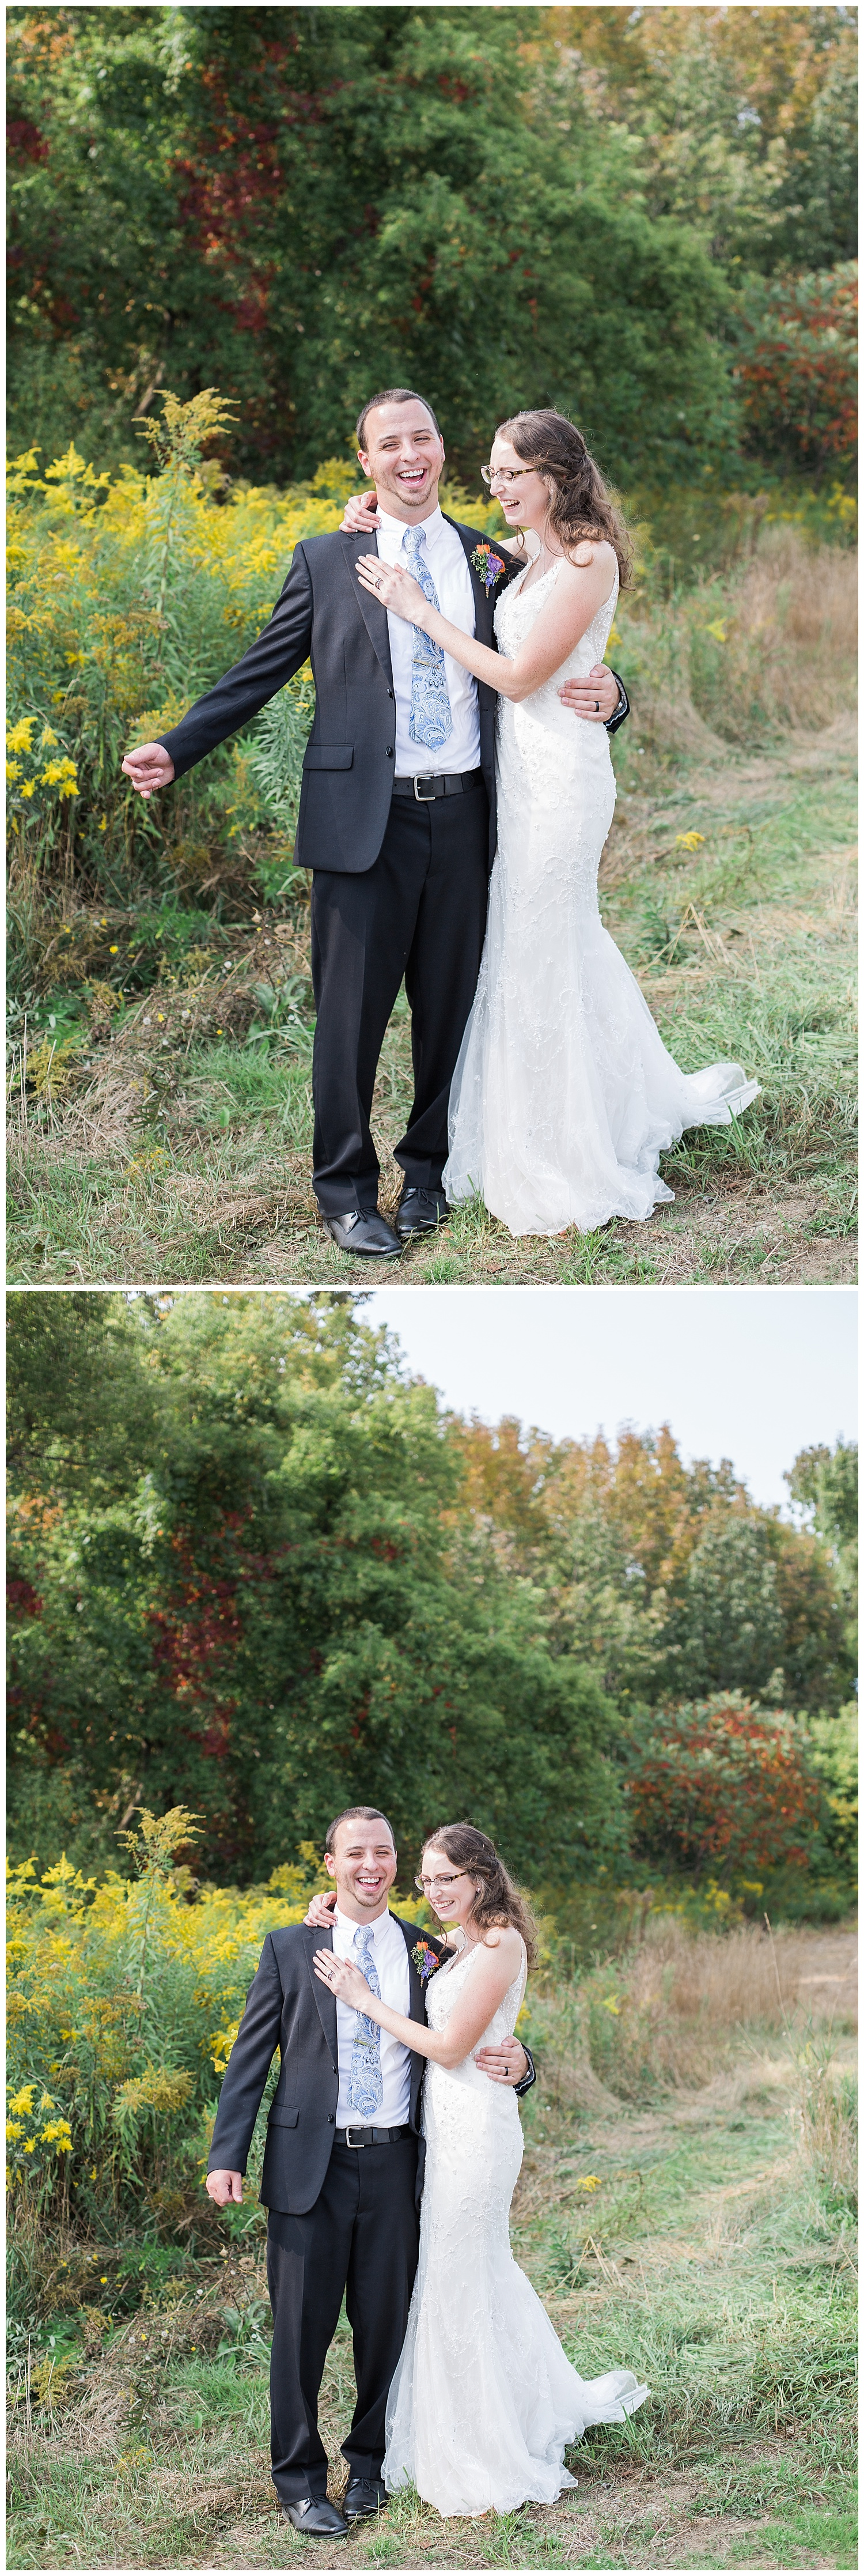 Chris and Leanne Hindle - Nugget Hill - Wayland NY - Lass and Beau-976_Buffalo wedding photography.jpg